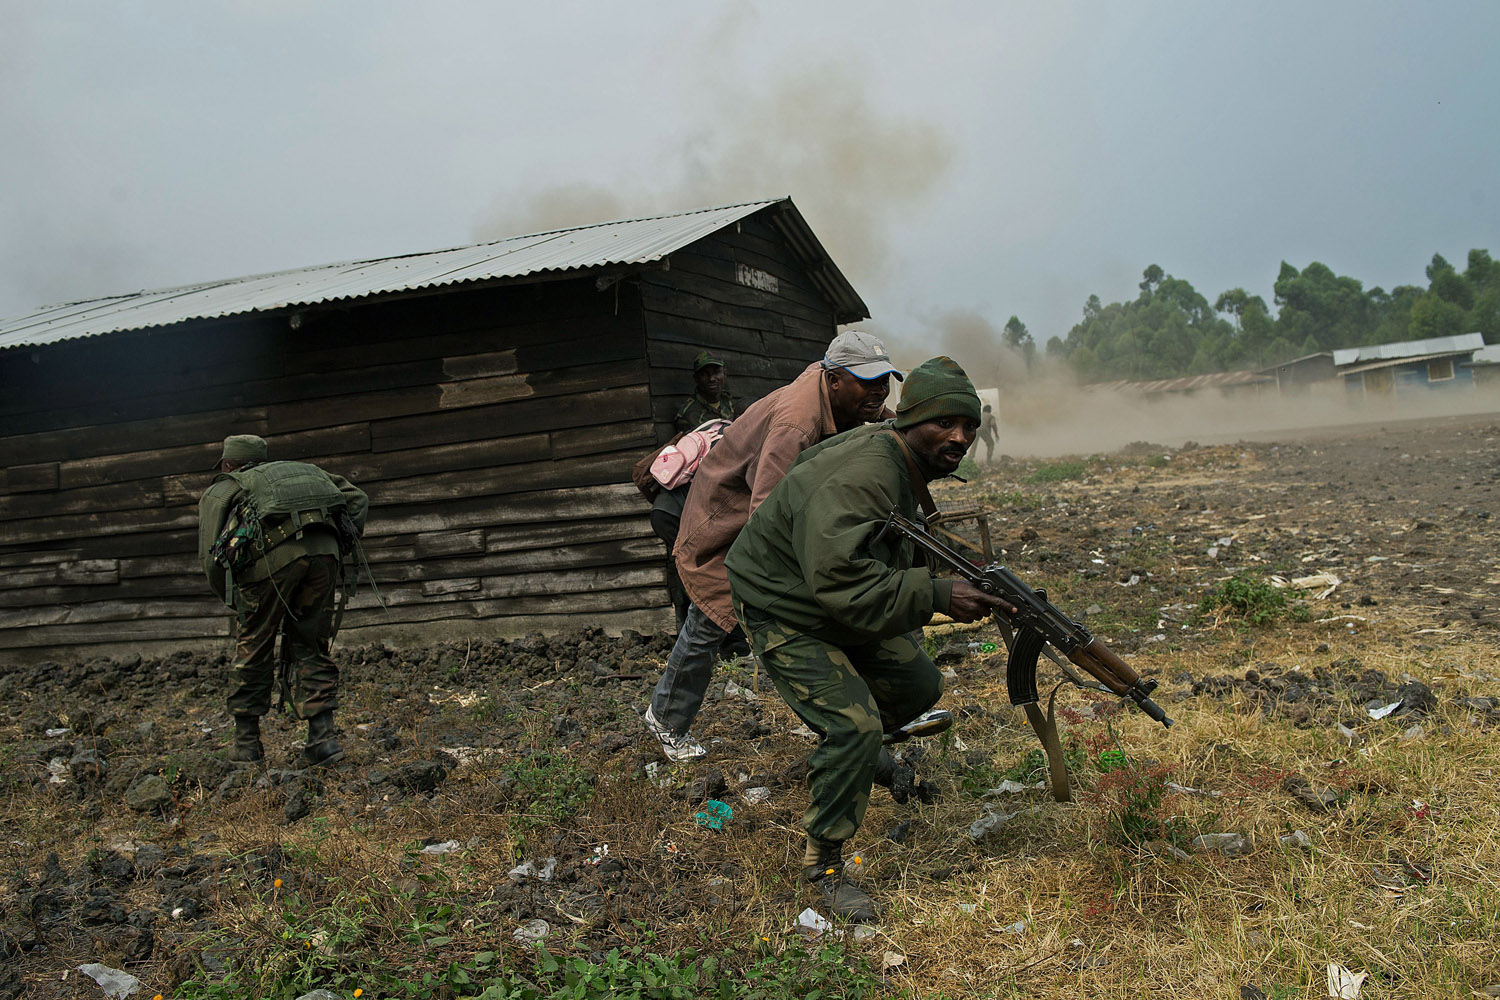 July 17, 2013. Congolese army soldiers react to shelling in Kanyarucinya, around 10km from Goma in the east of the Democratic Republic of the Congo.